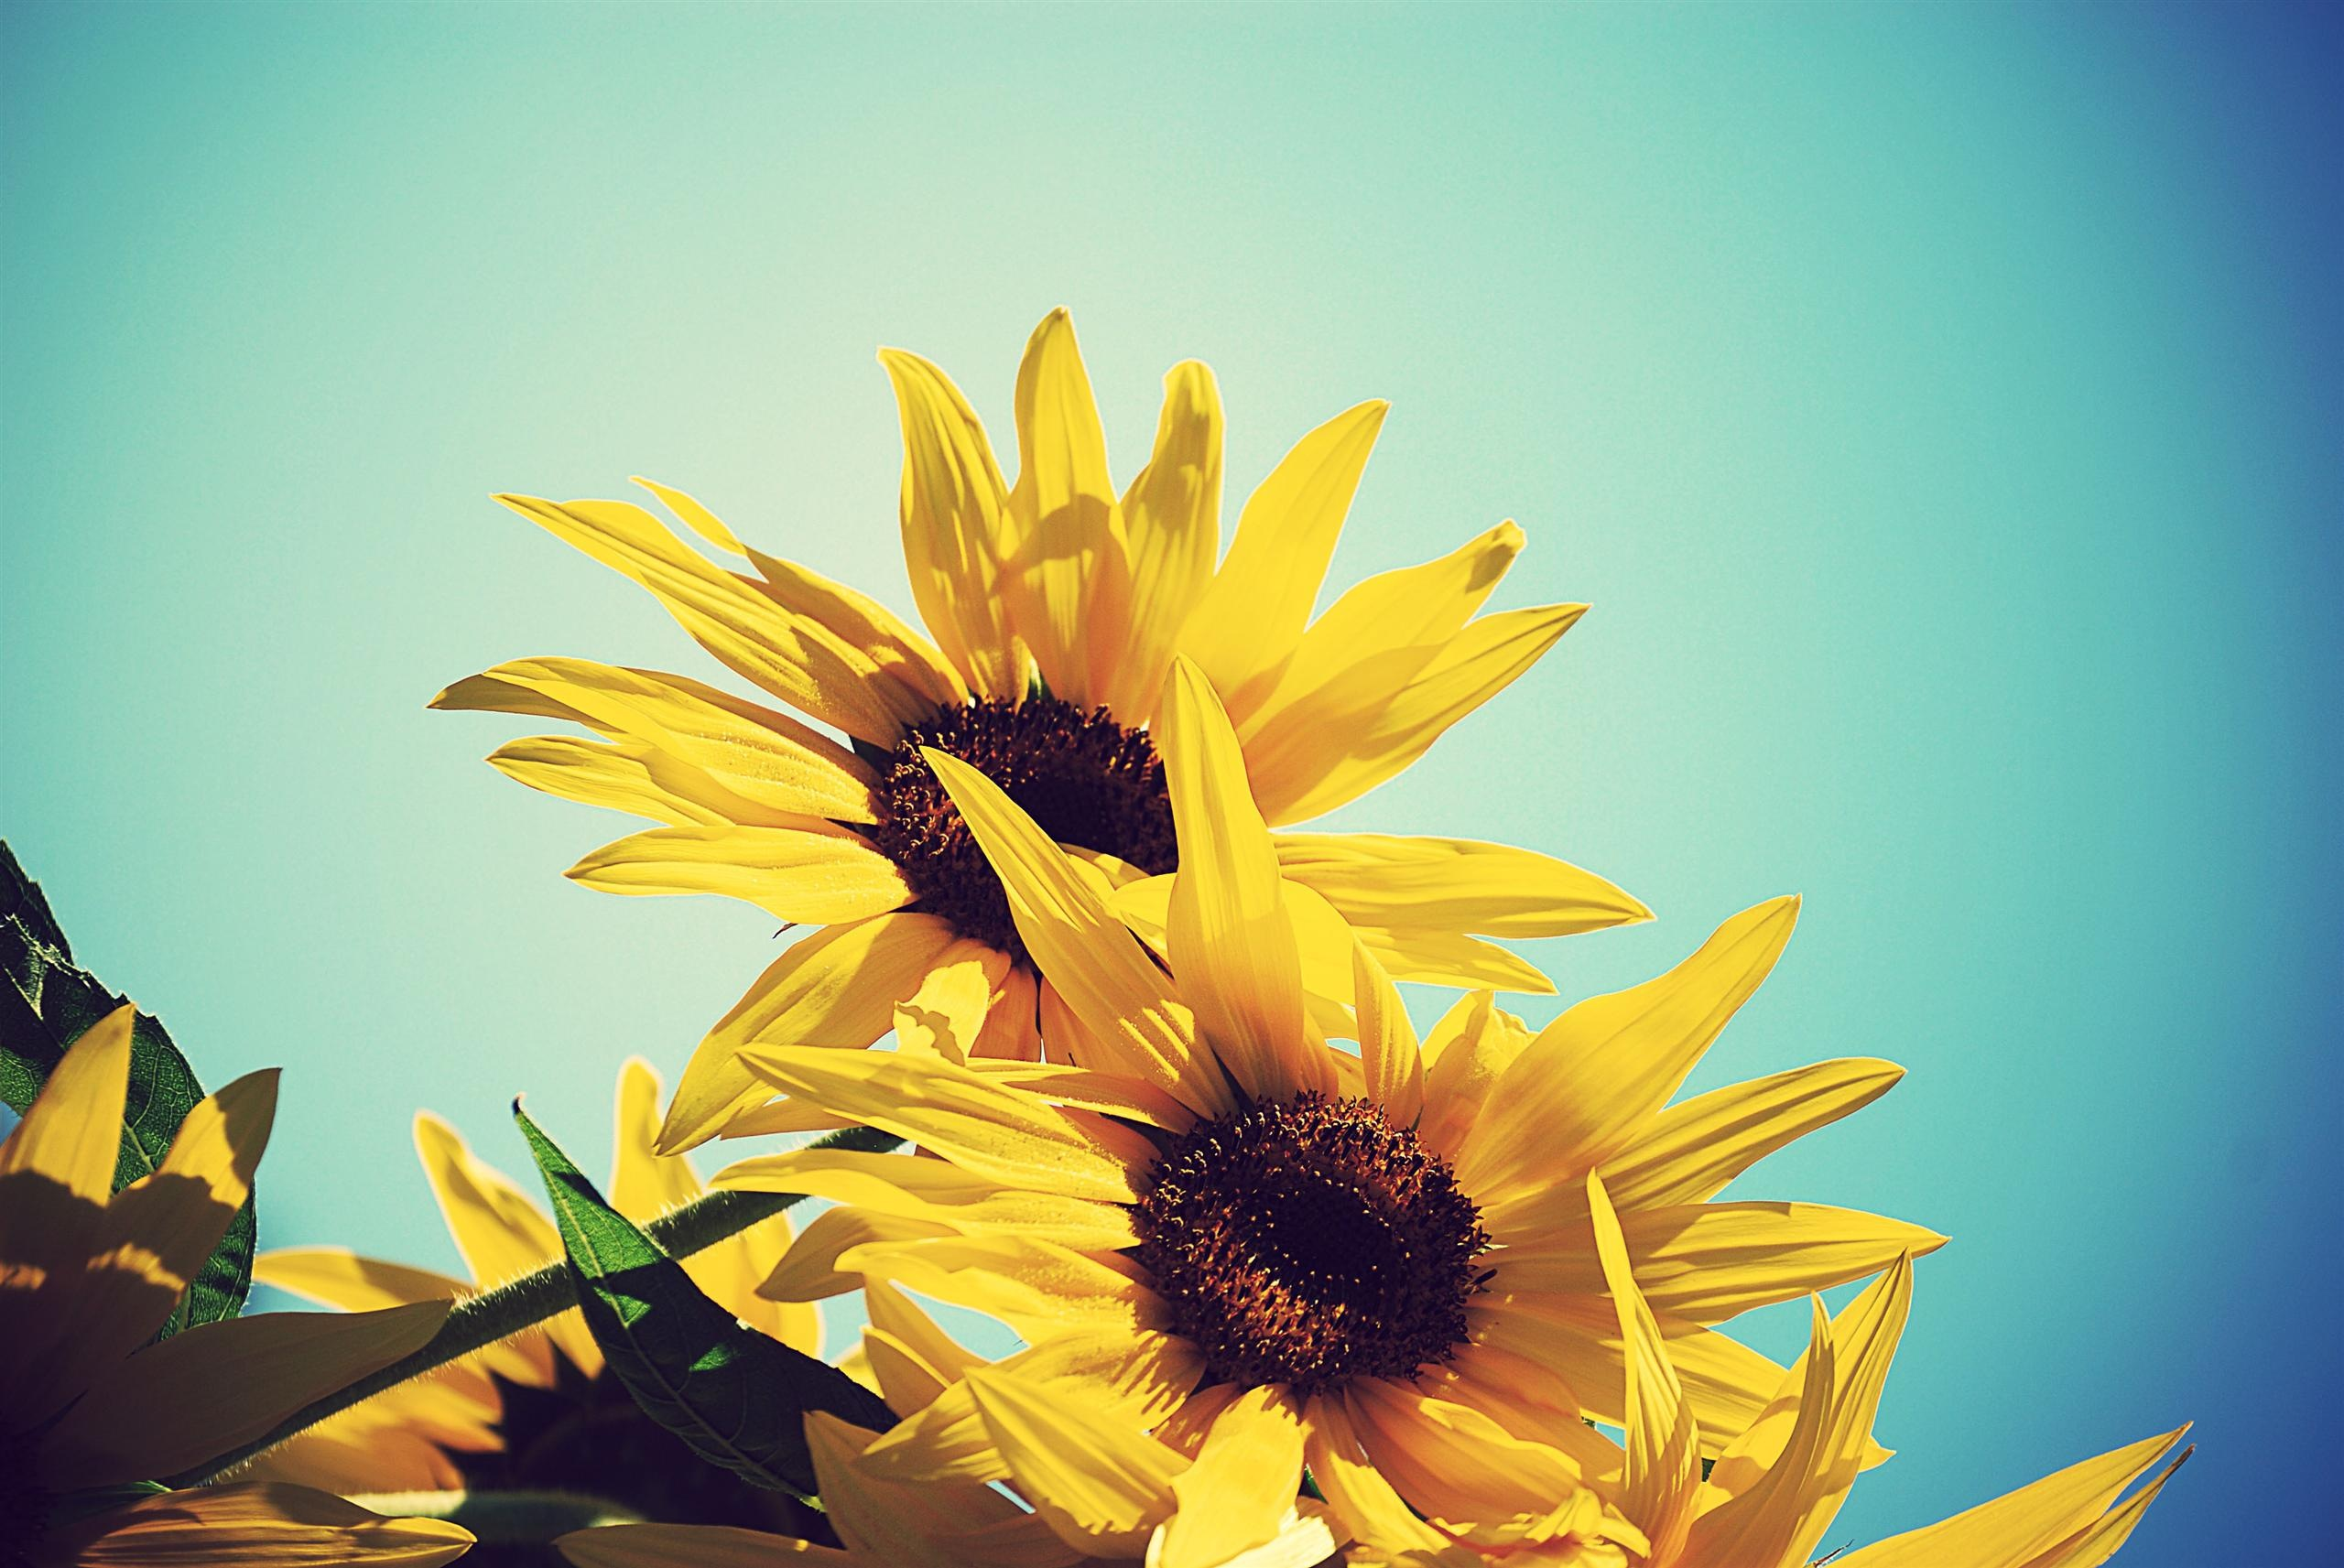 Sunflower Tumblr Wallpapers Background Is Cool Wallpapers